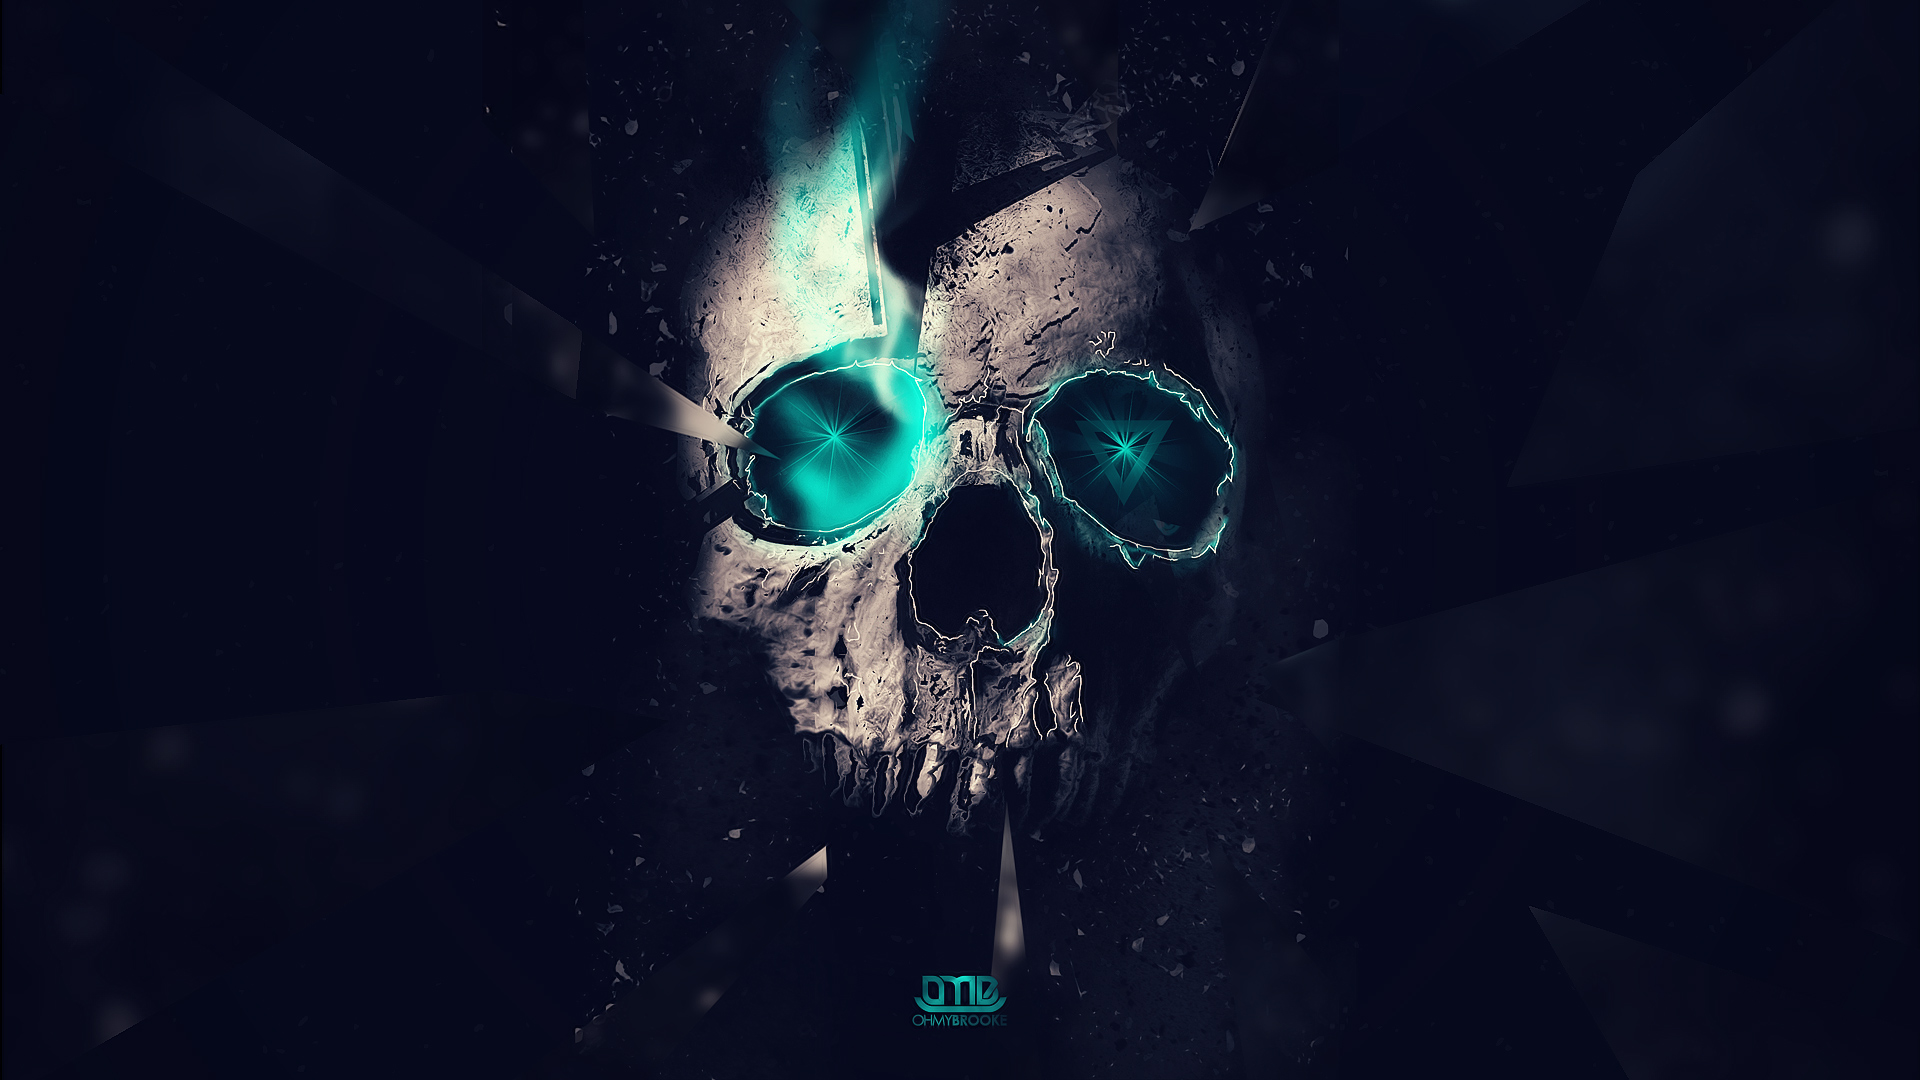 Skull Manipulation Wallpaper 1920x1080